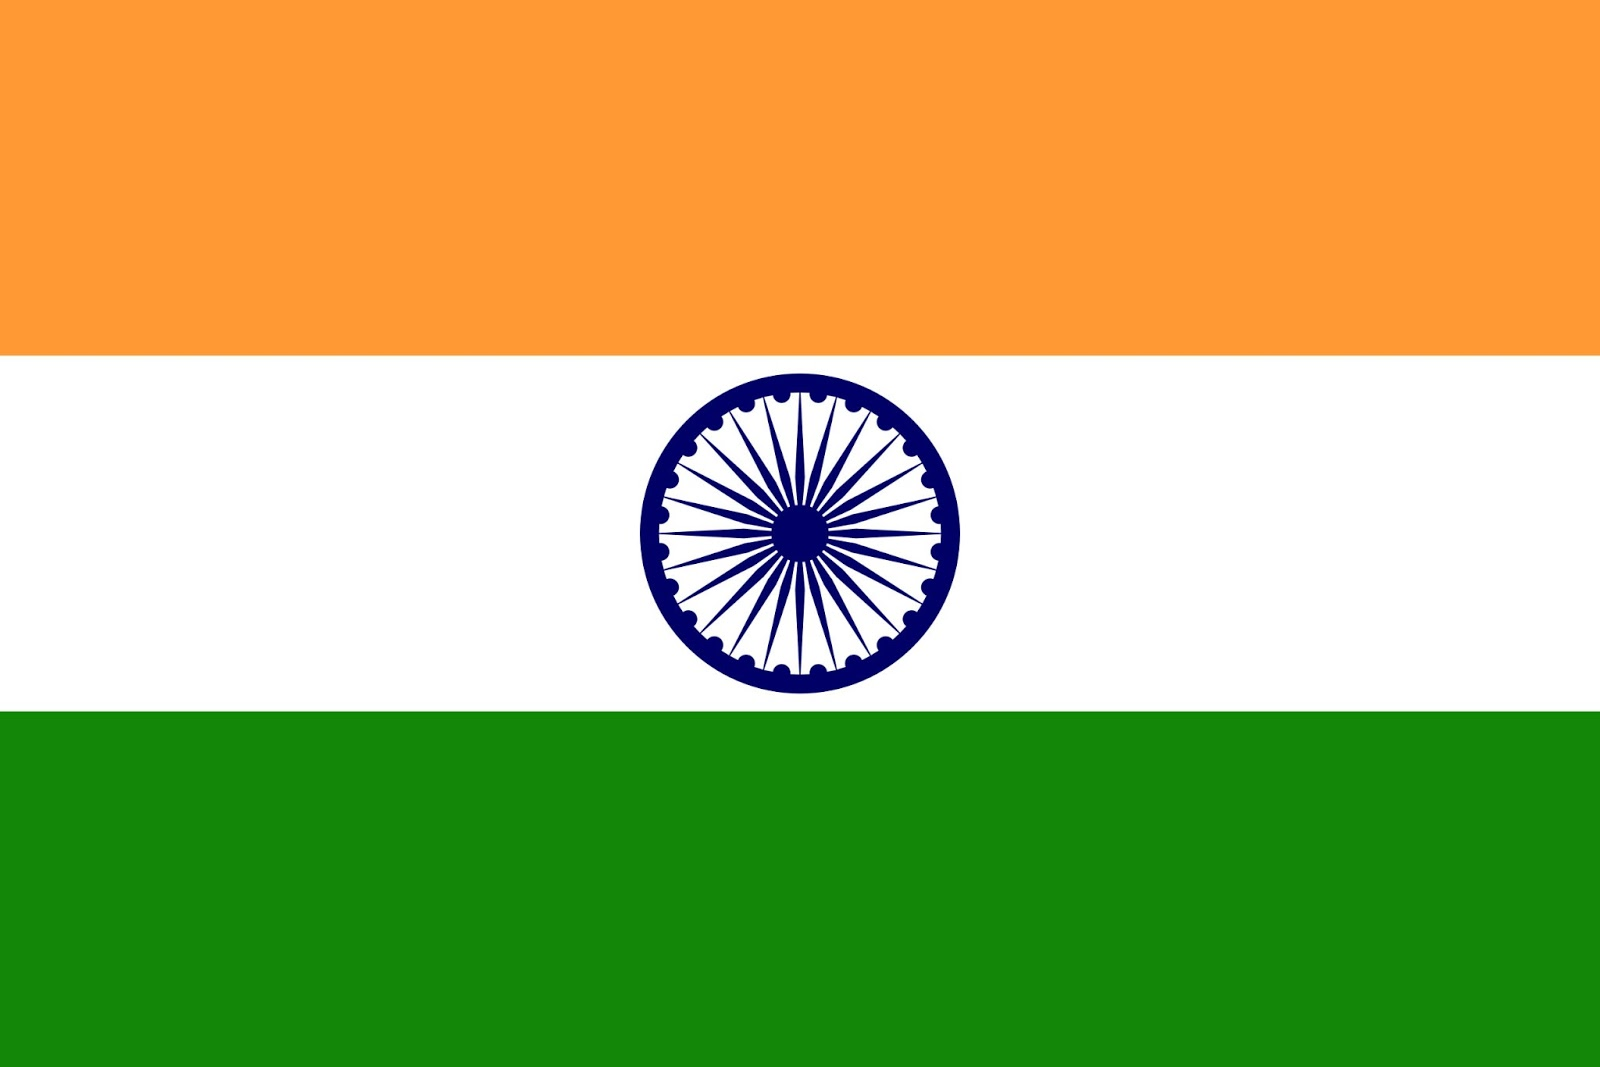 Indian Flag Images Hd720p: Indian Flag High Resolution Wallpapers